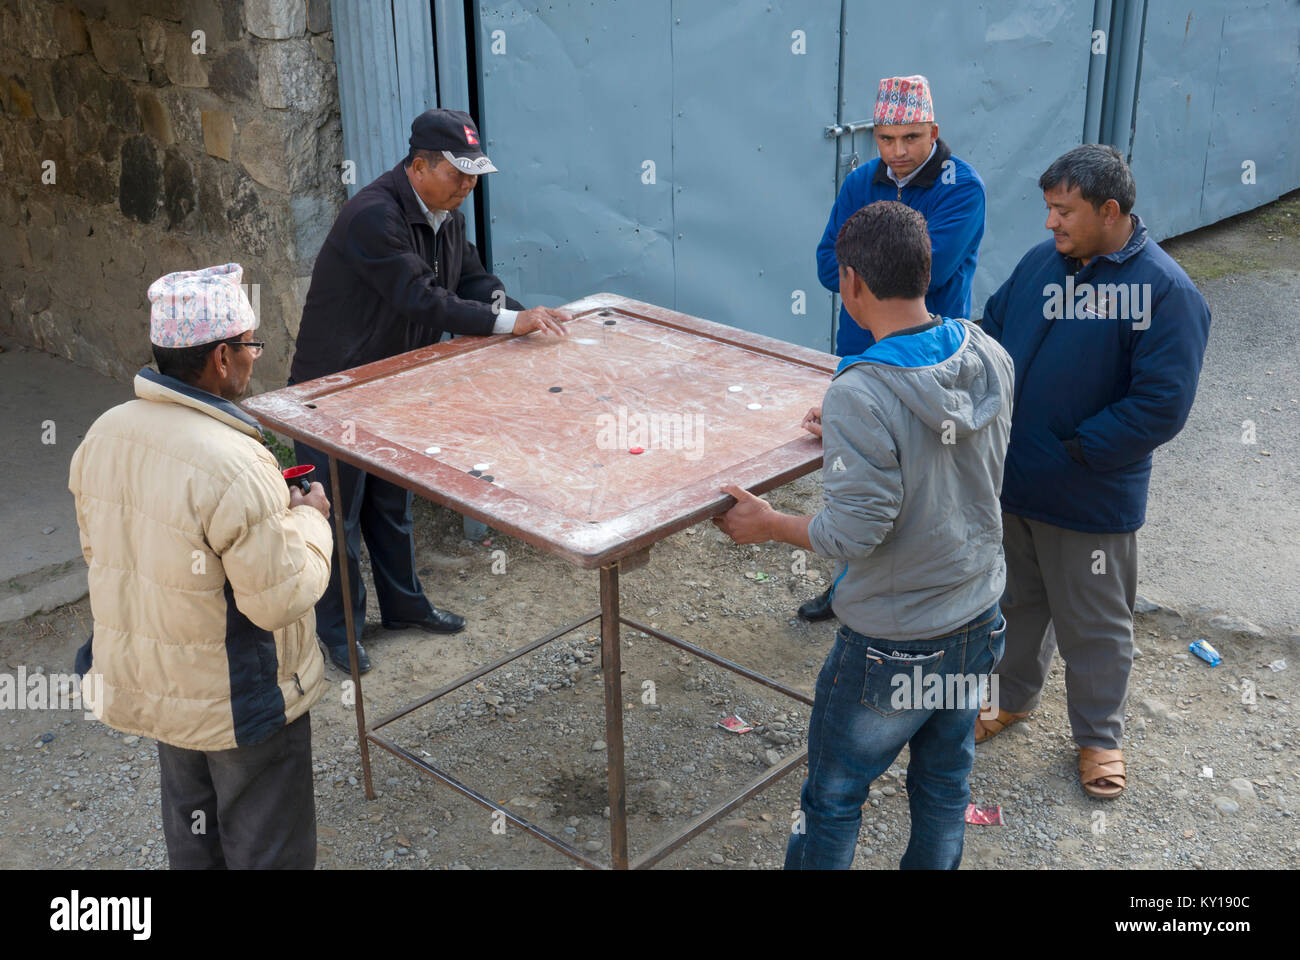 Men playing game of carrom in street in Pokhara, Nepal - Stock Image